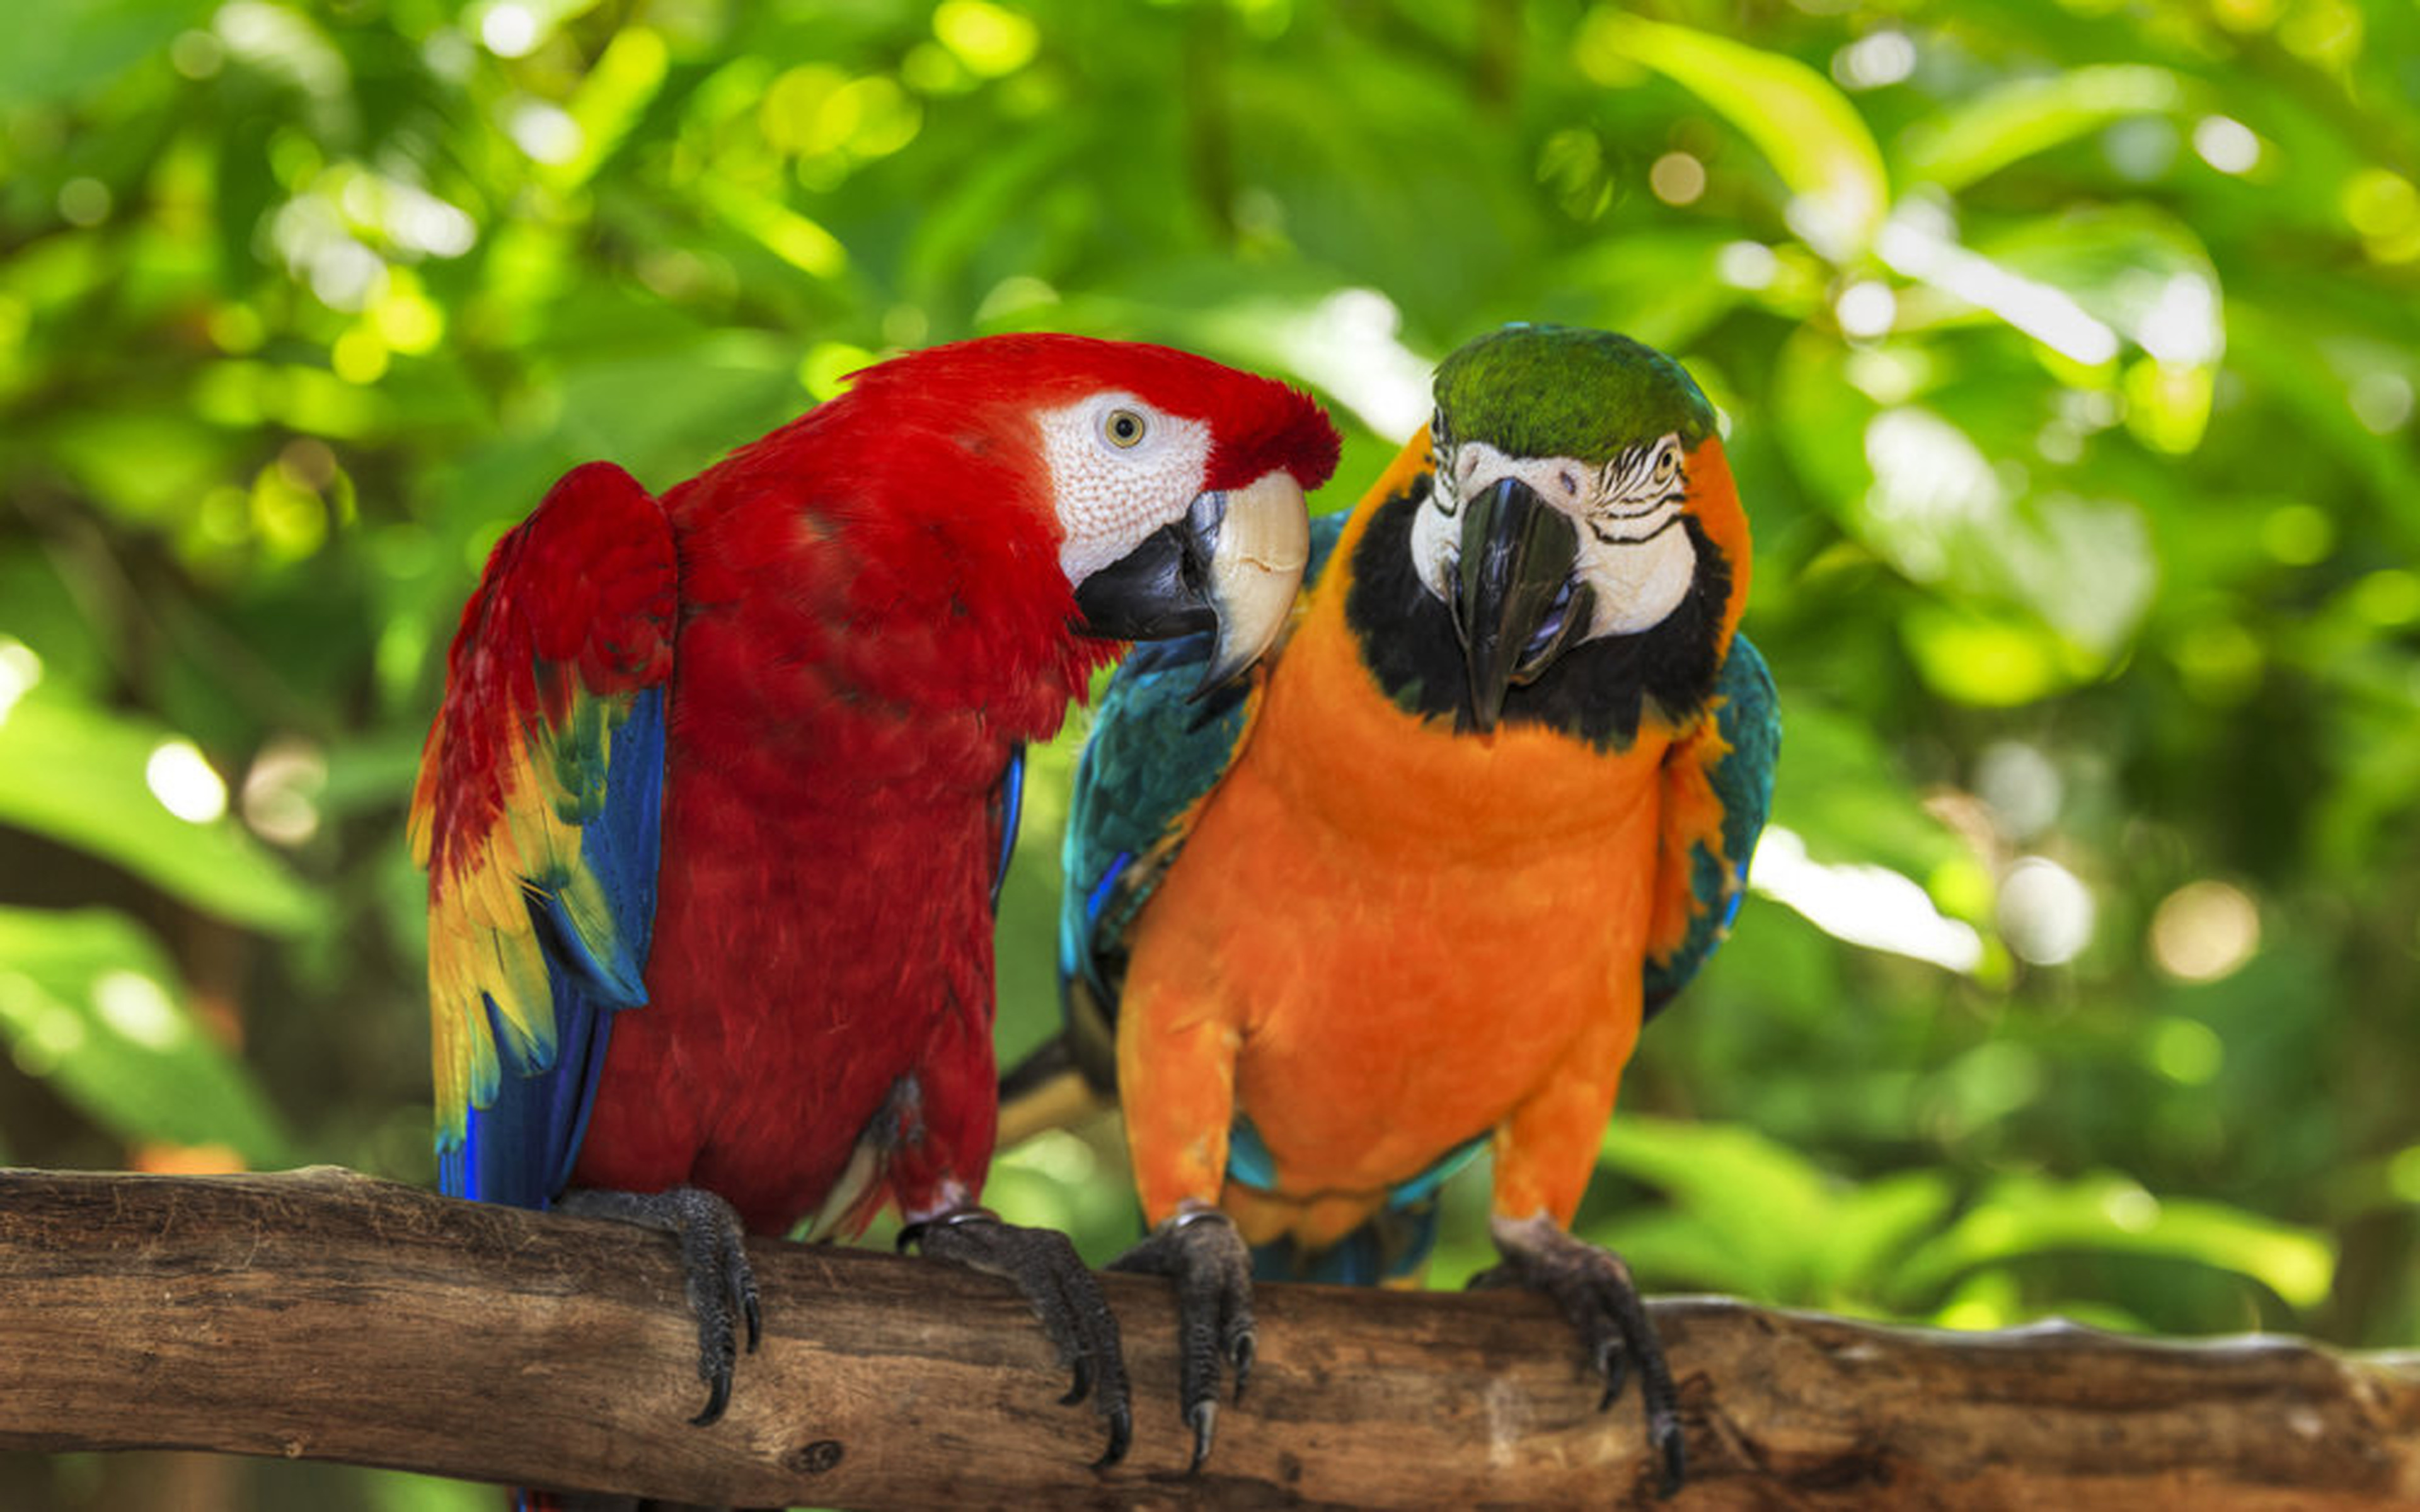 Hawk Iphone Wallpaper Pair Of Macaws Perching On A Branch Wallpapers13 Com